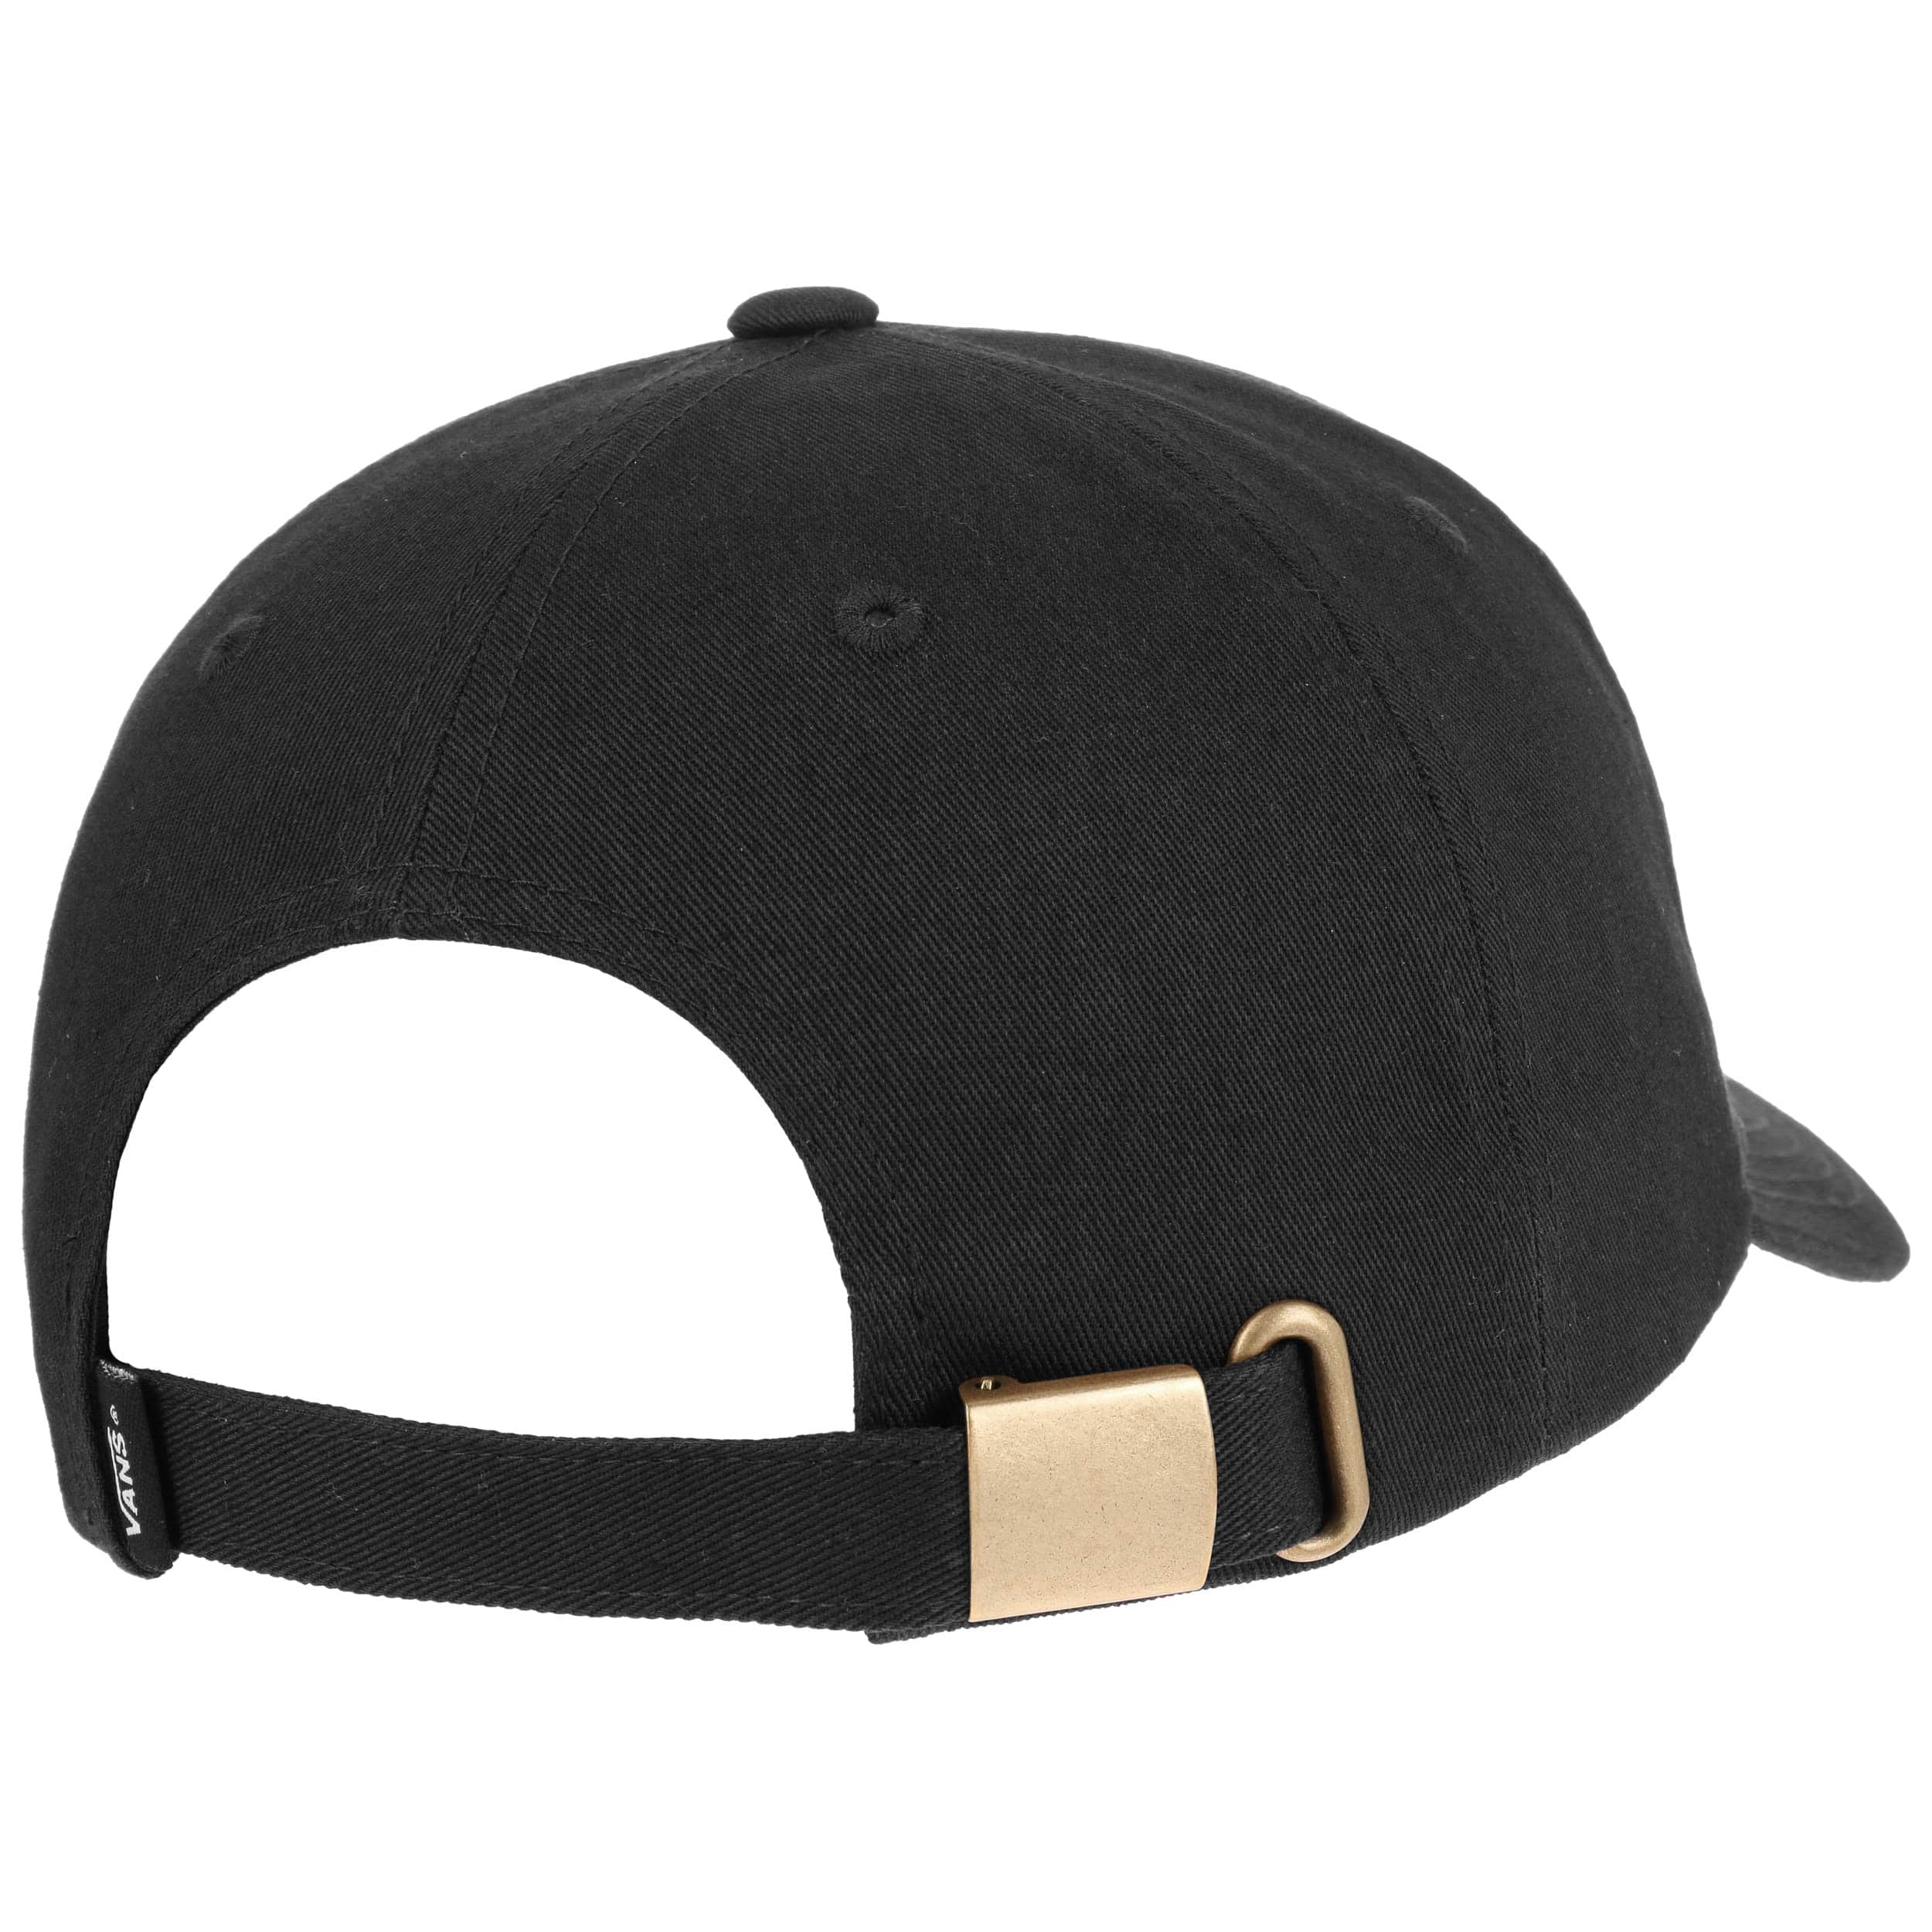 6a56b5adee5 ... Curved Bill Strapback Cap by Vans - black 3 ...